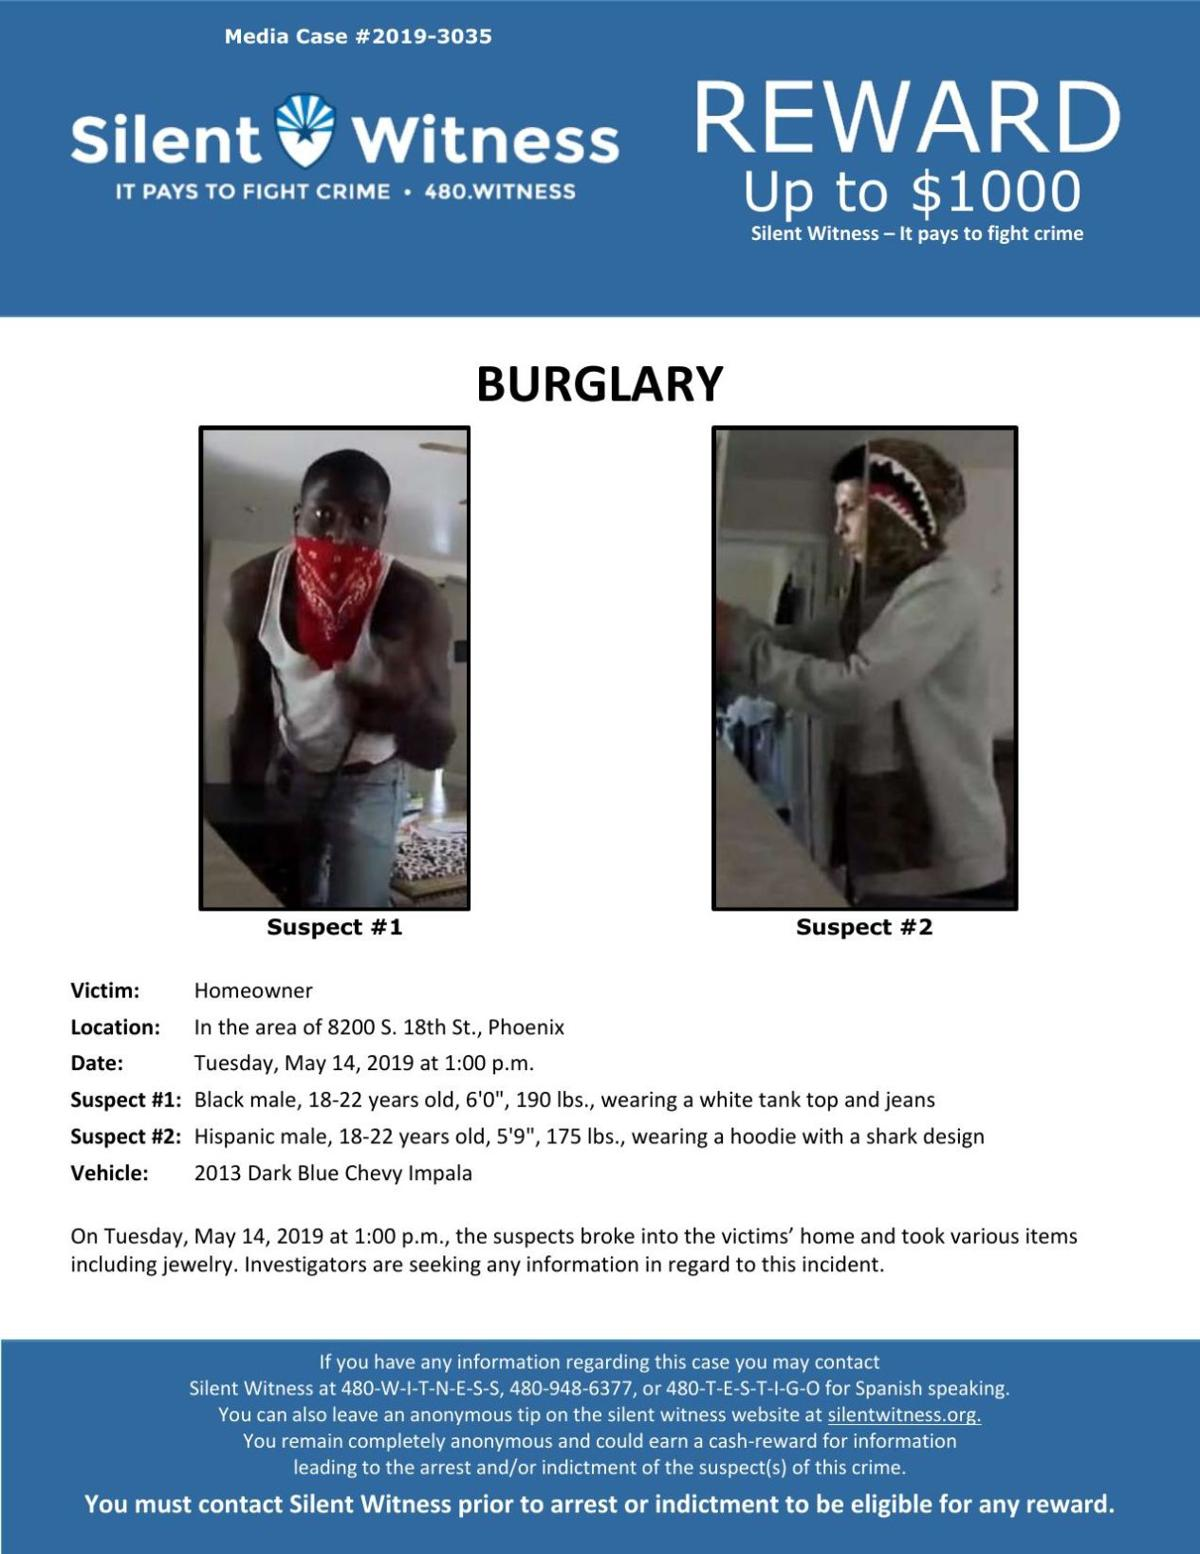 Silent Witness flyer for Phoenix home burglary on May 14, 2019